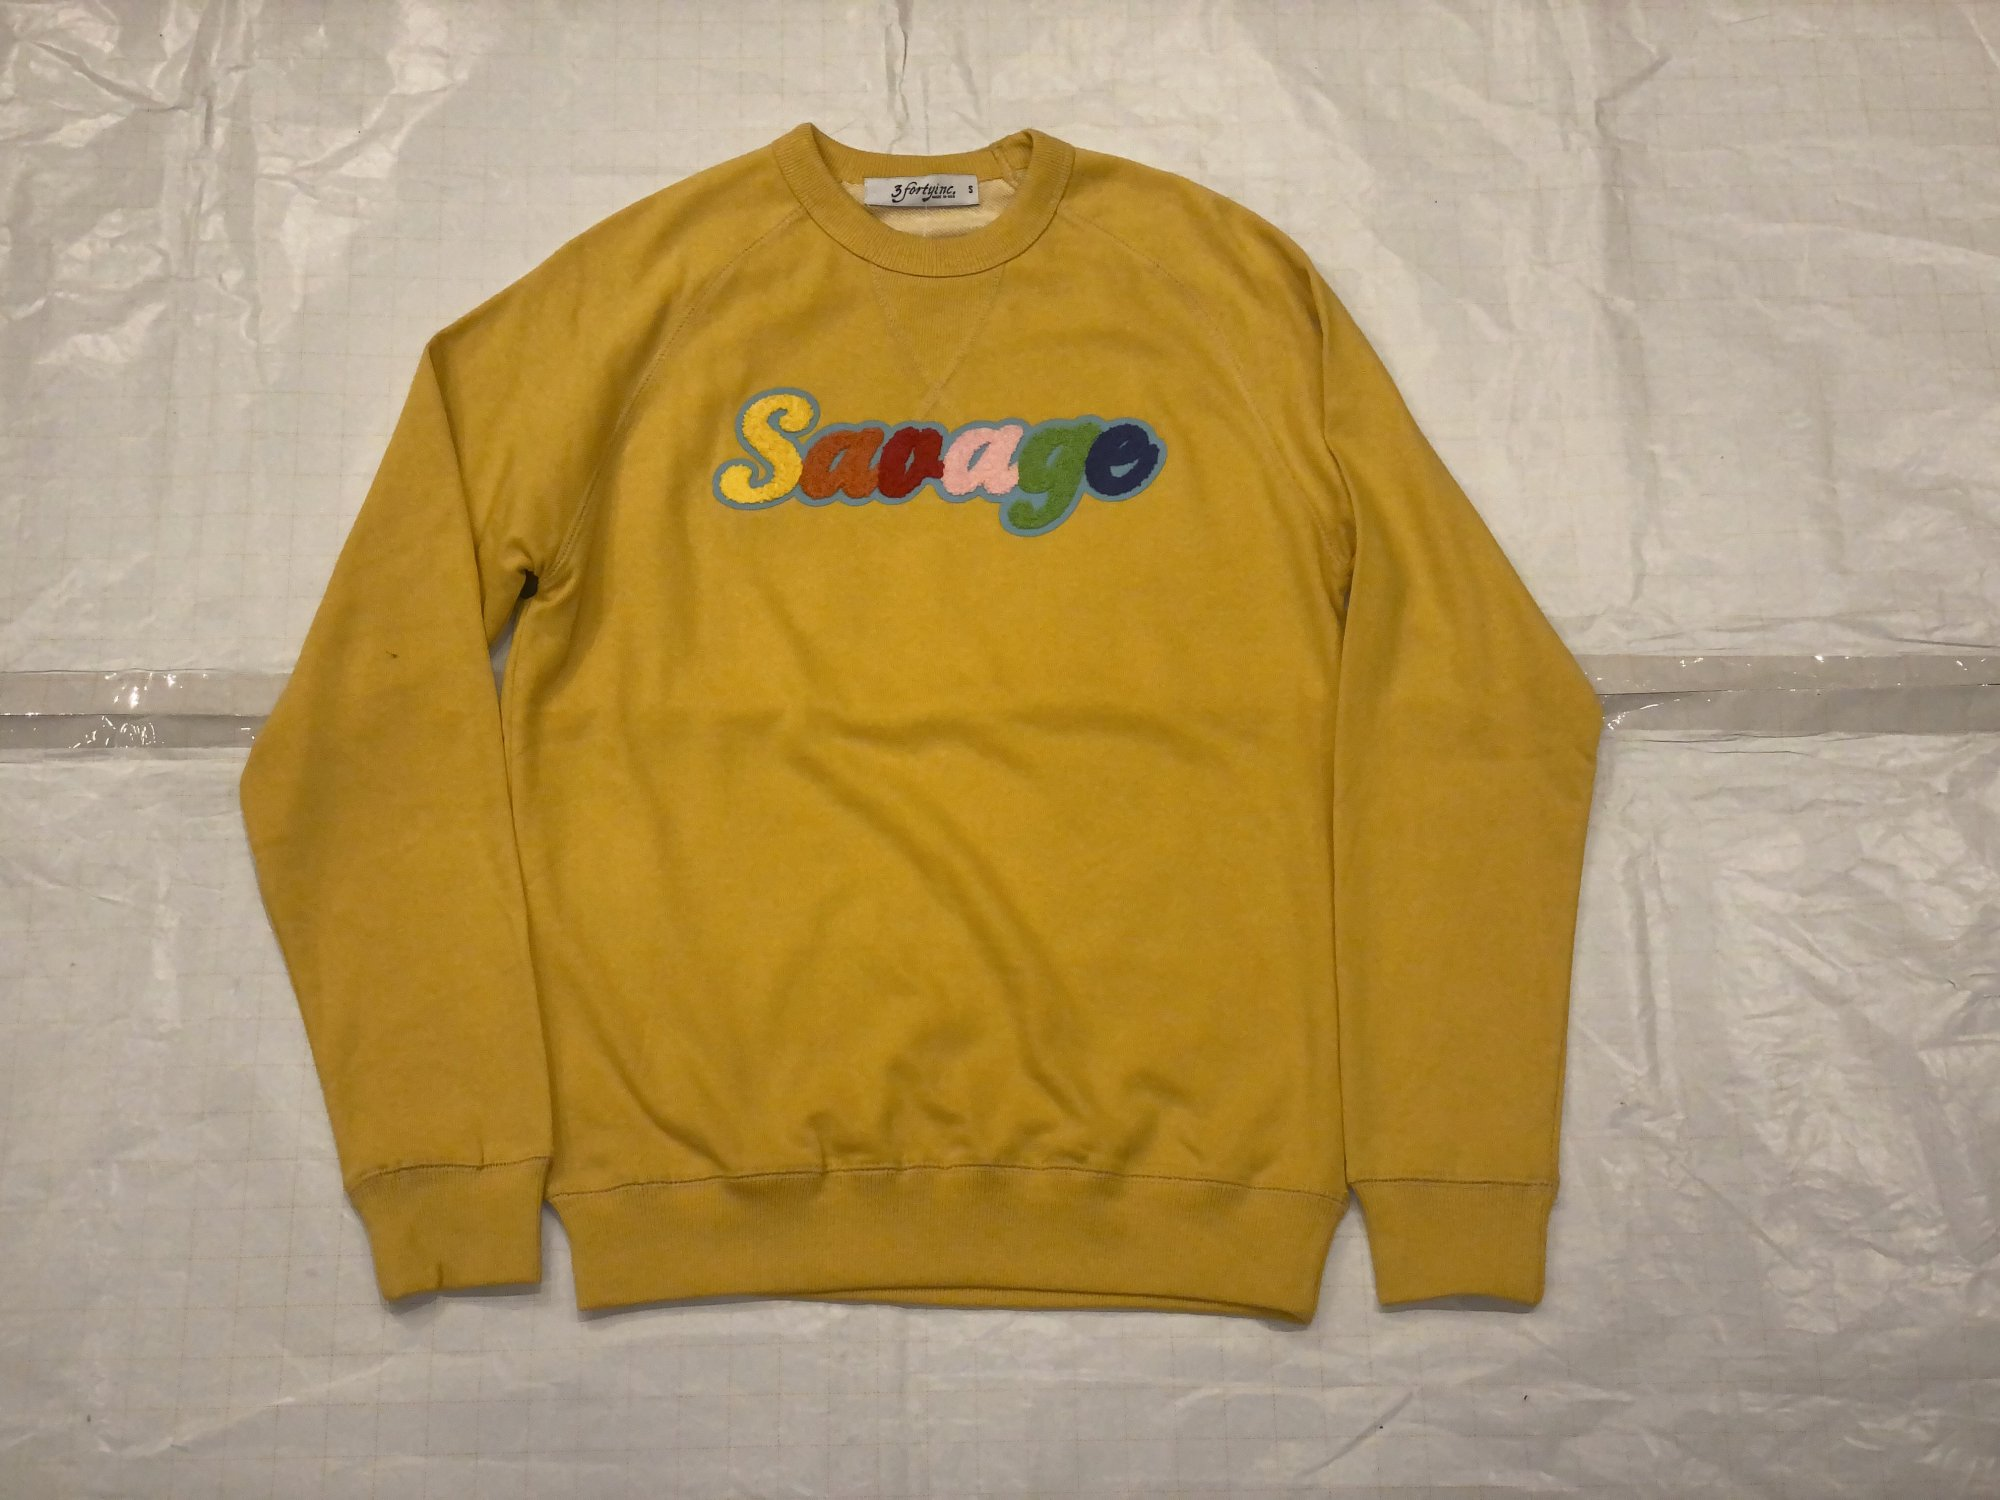 3 FORTY CREW NECK SWEATER